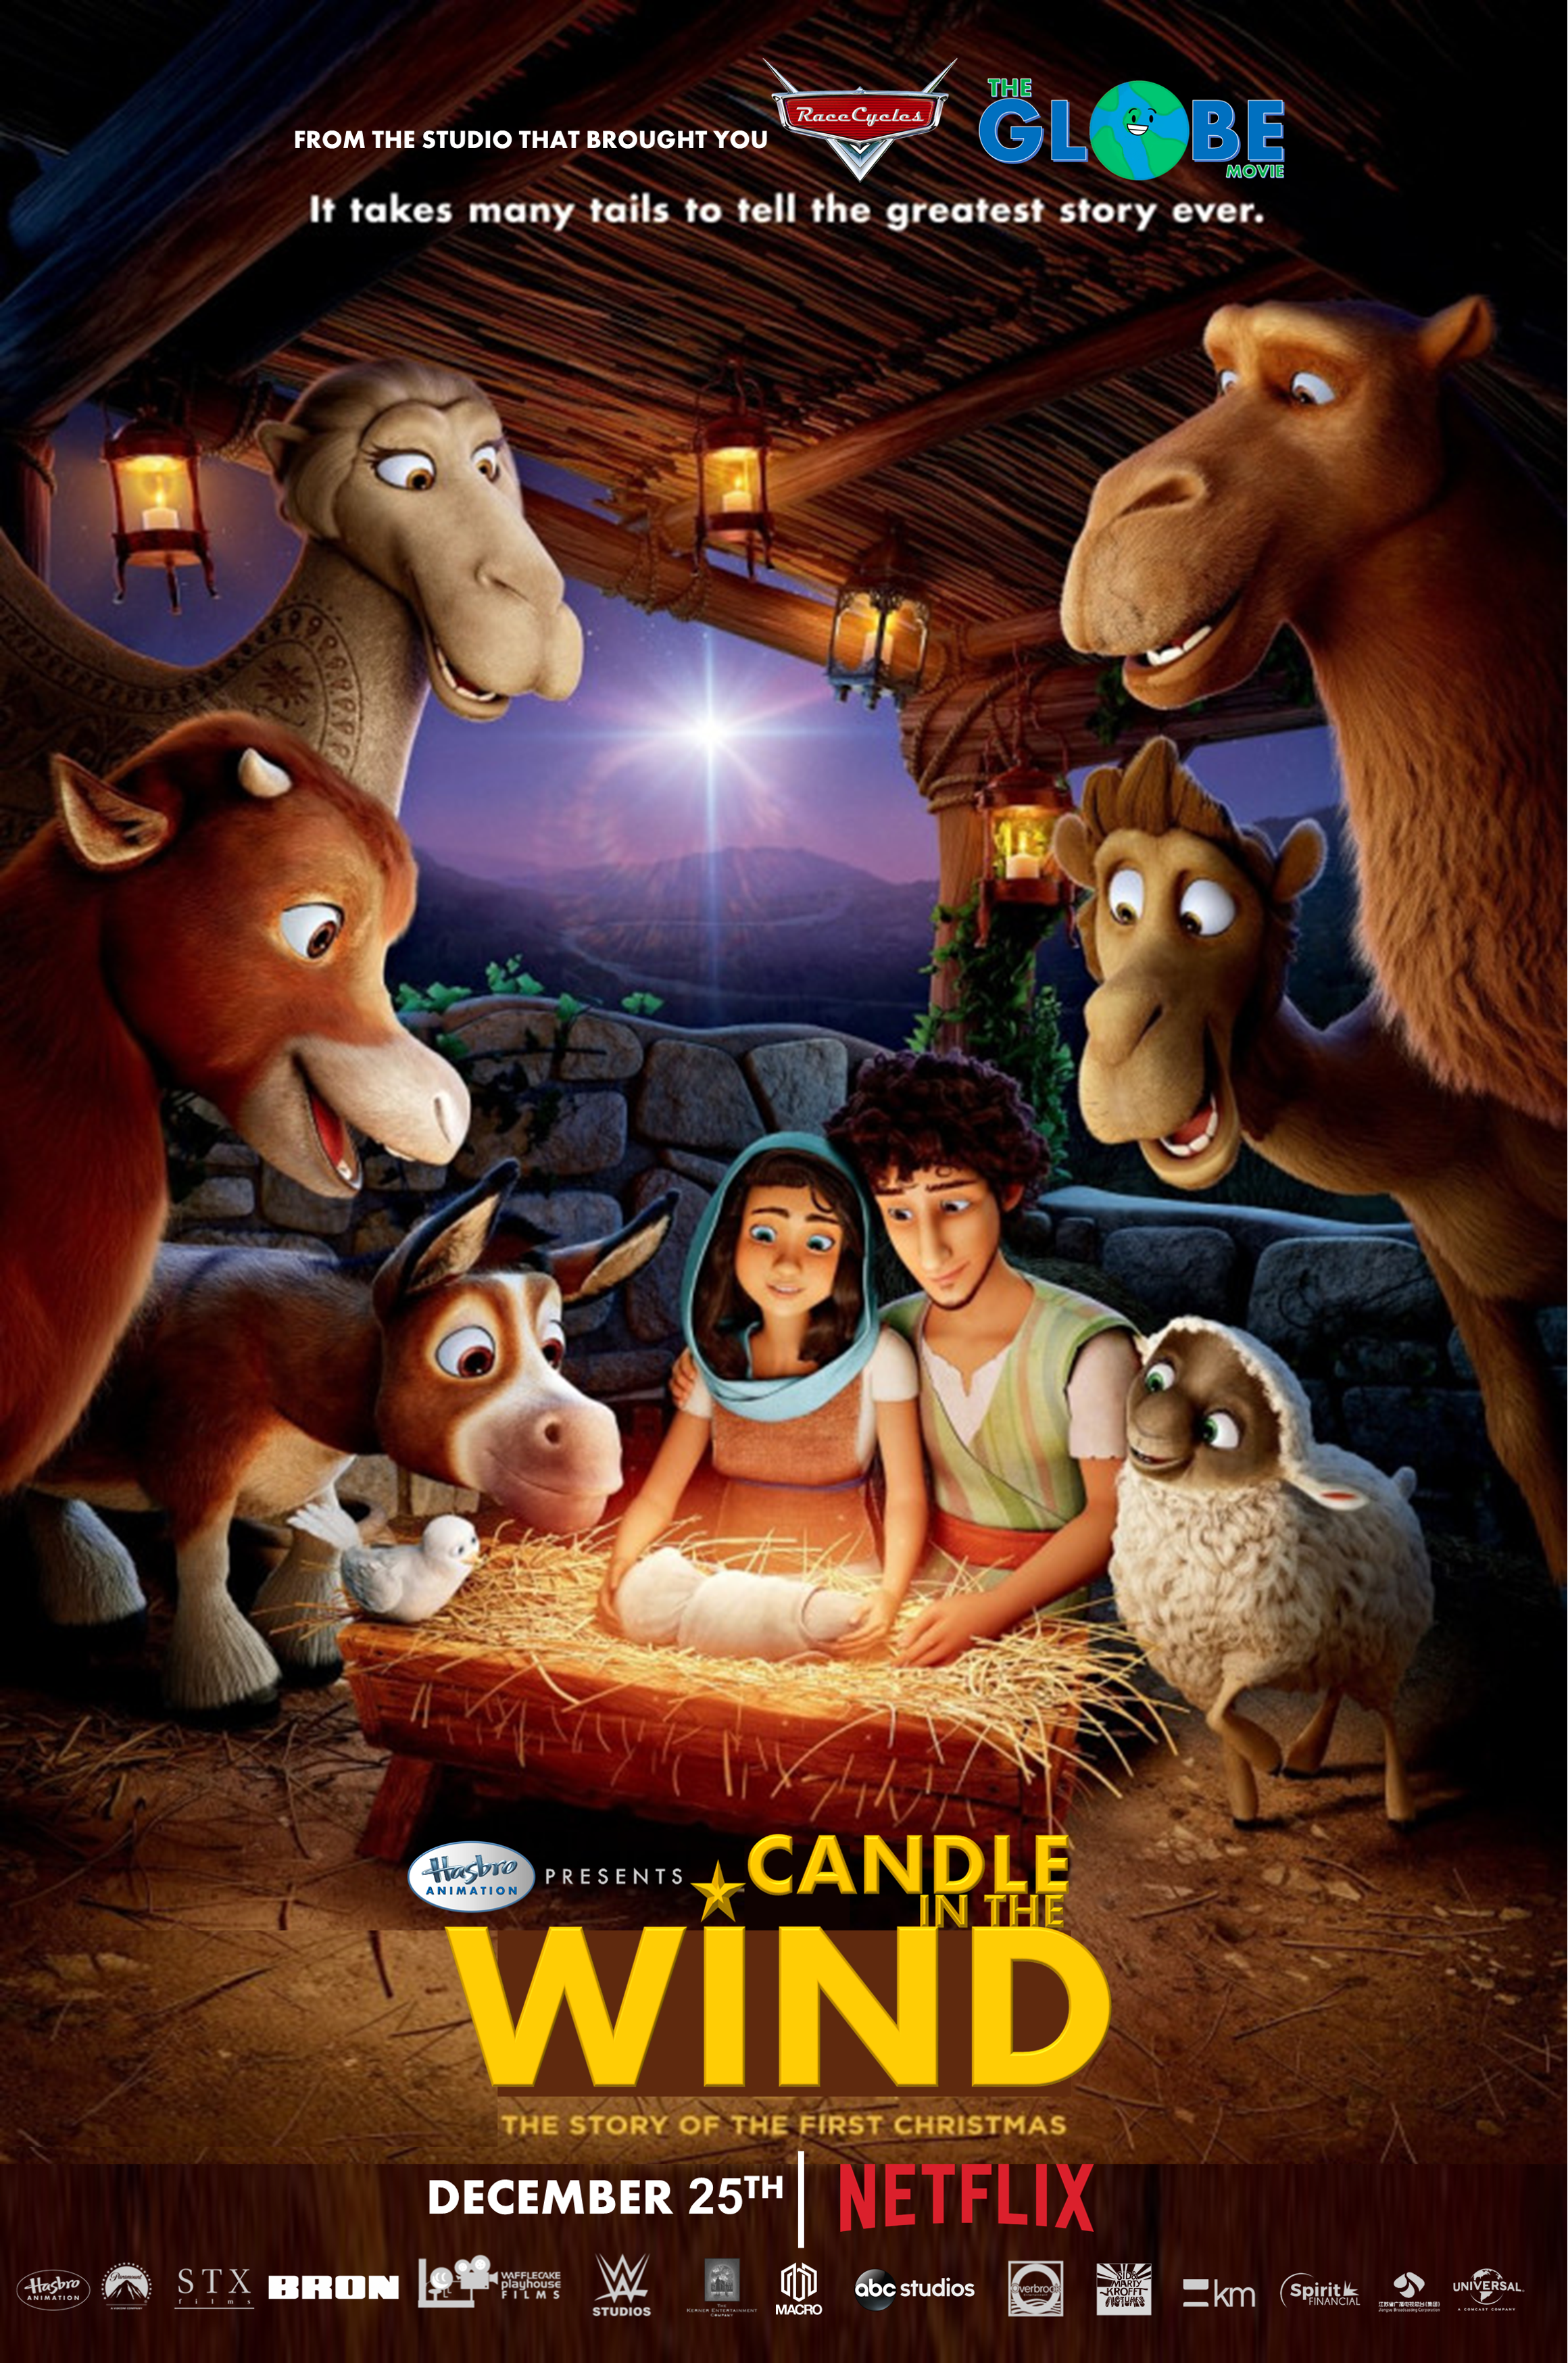 Candle in The Wind (2017 film)